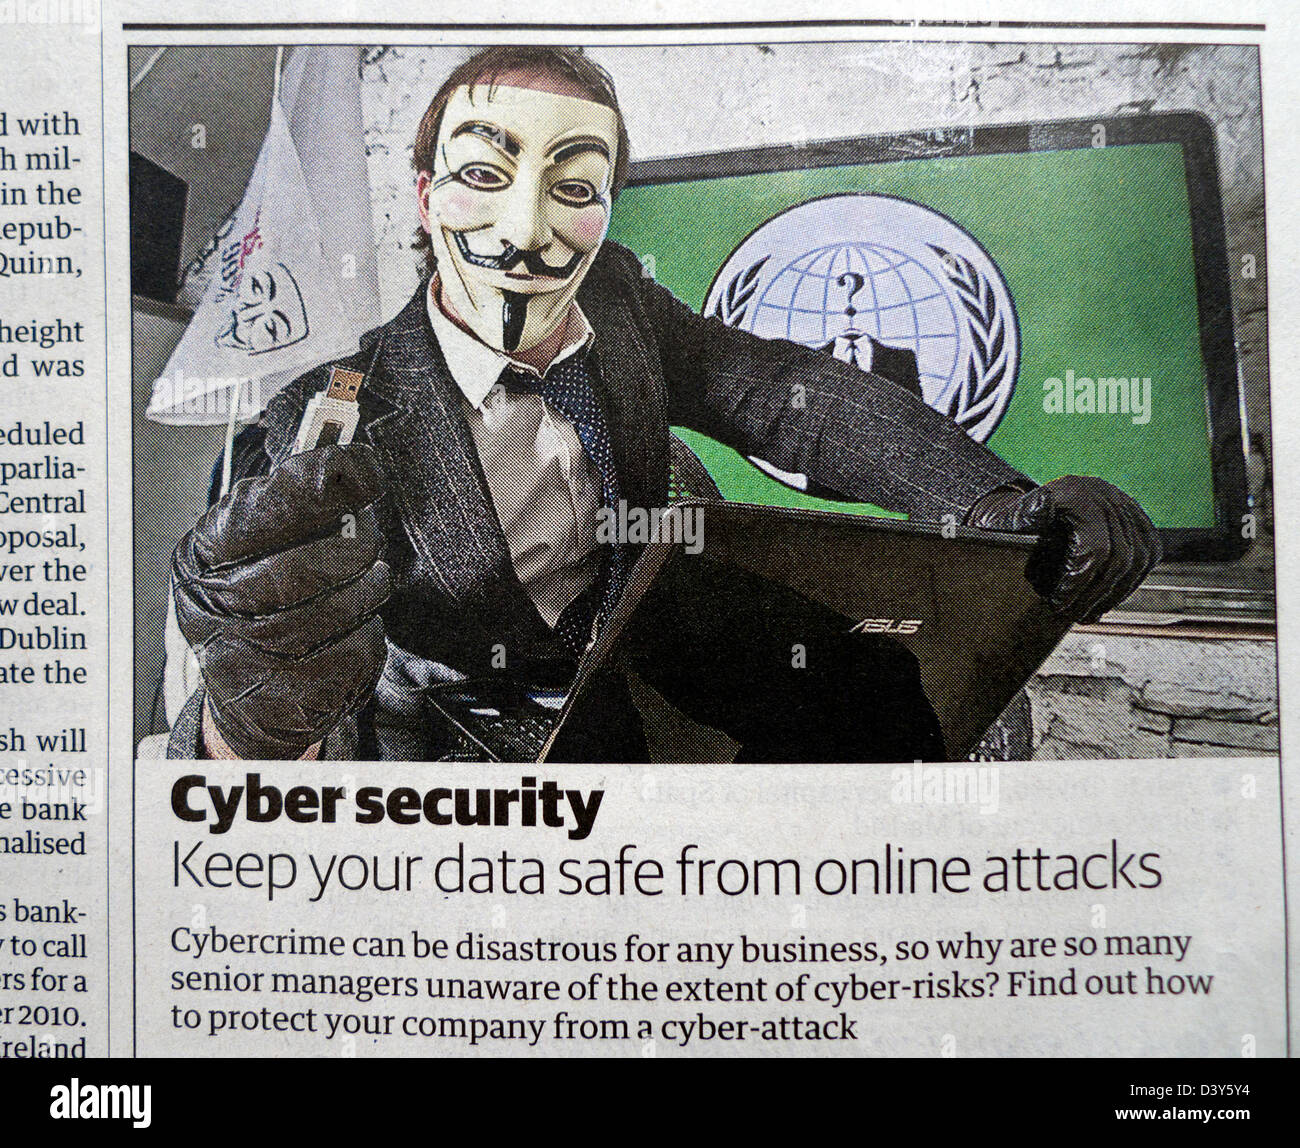 Cyber security newspaper advertisement with Anonymous hacker and memory stick UK - Stock Image